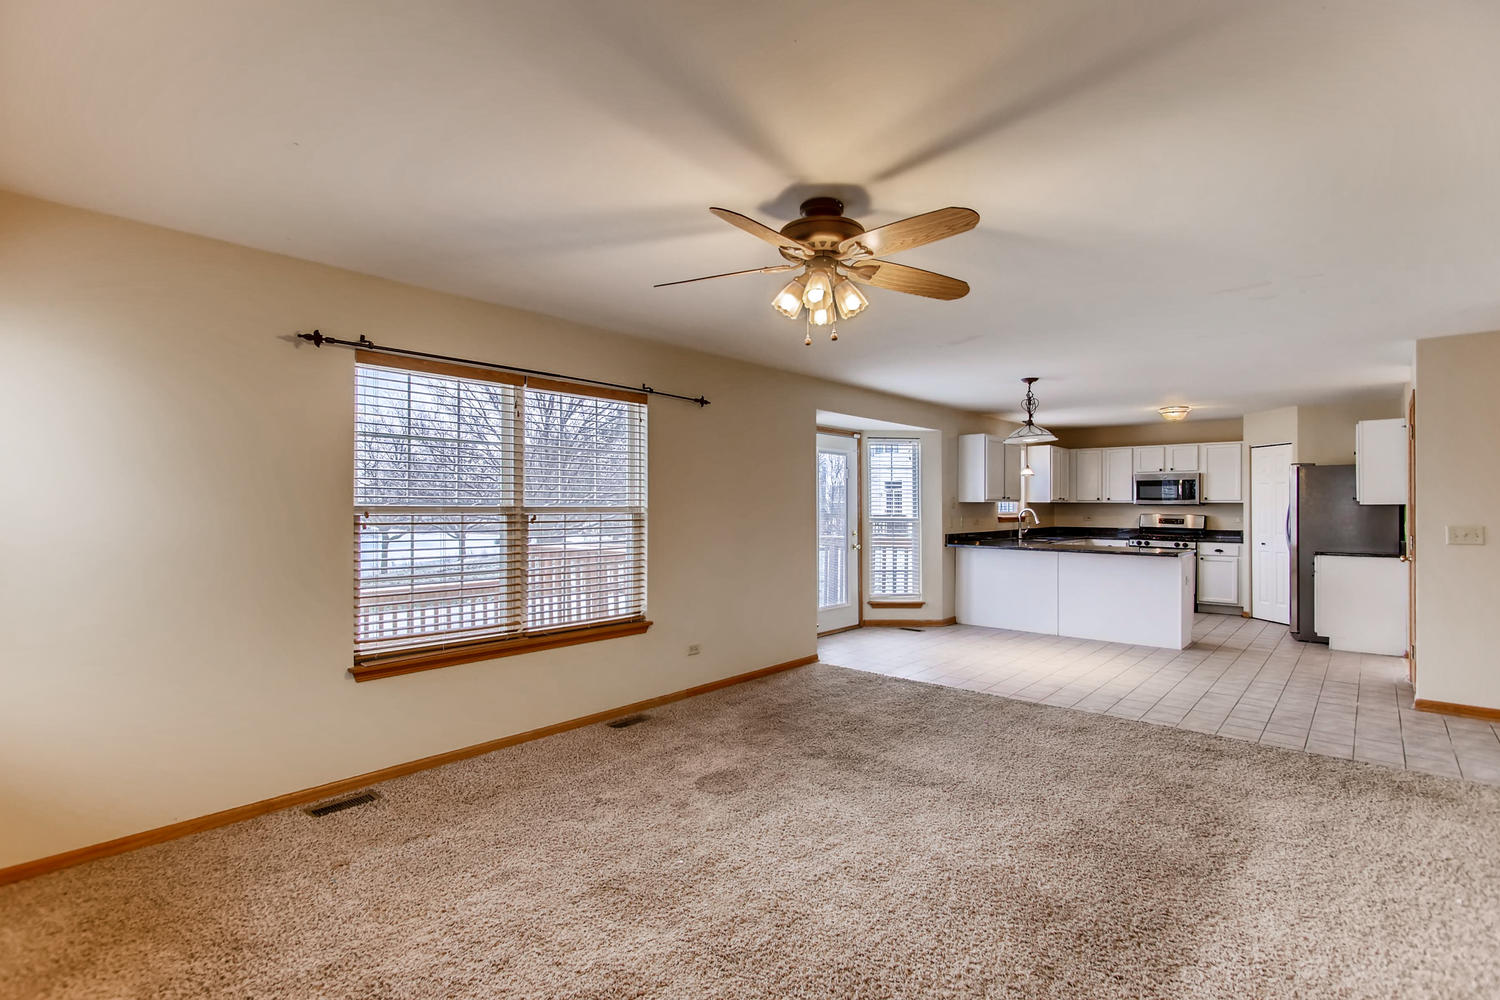 Photo of 137 Wedgeport Circle, Romeoville, IL, 60446